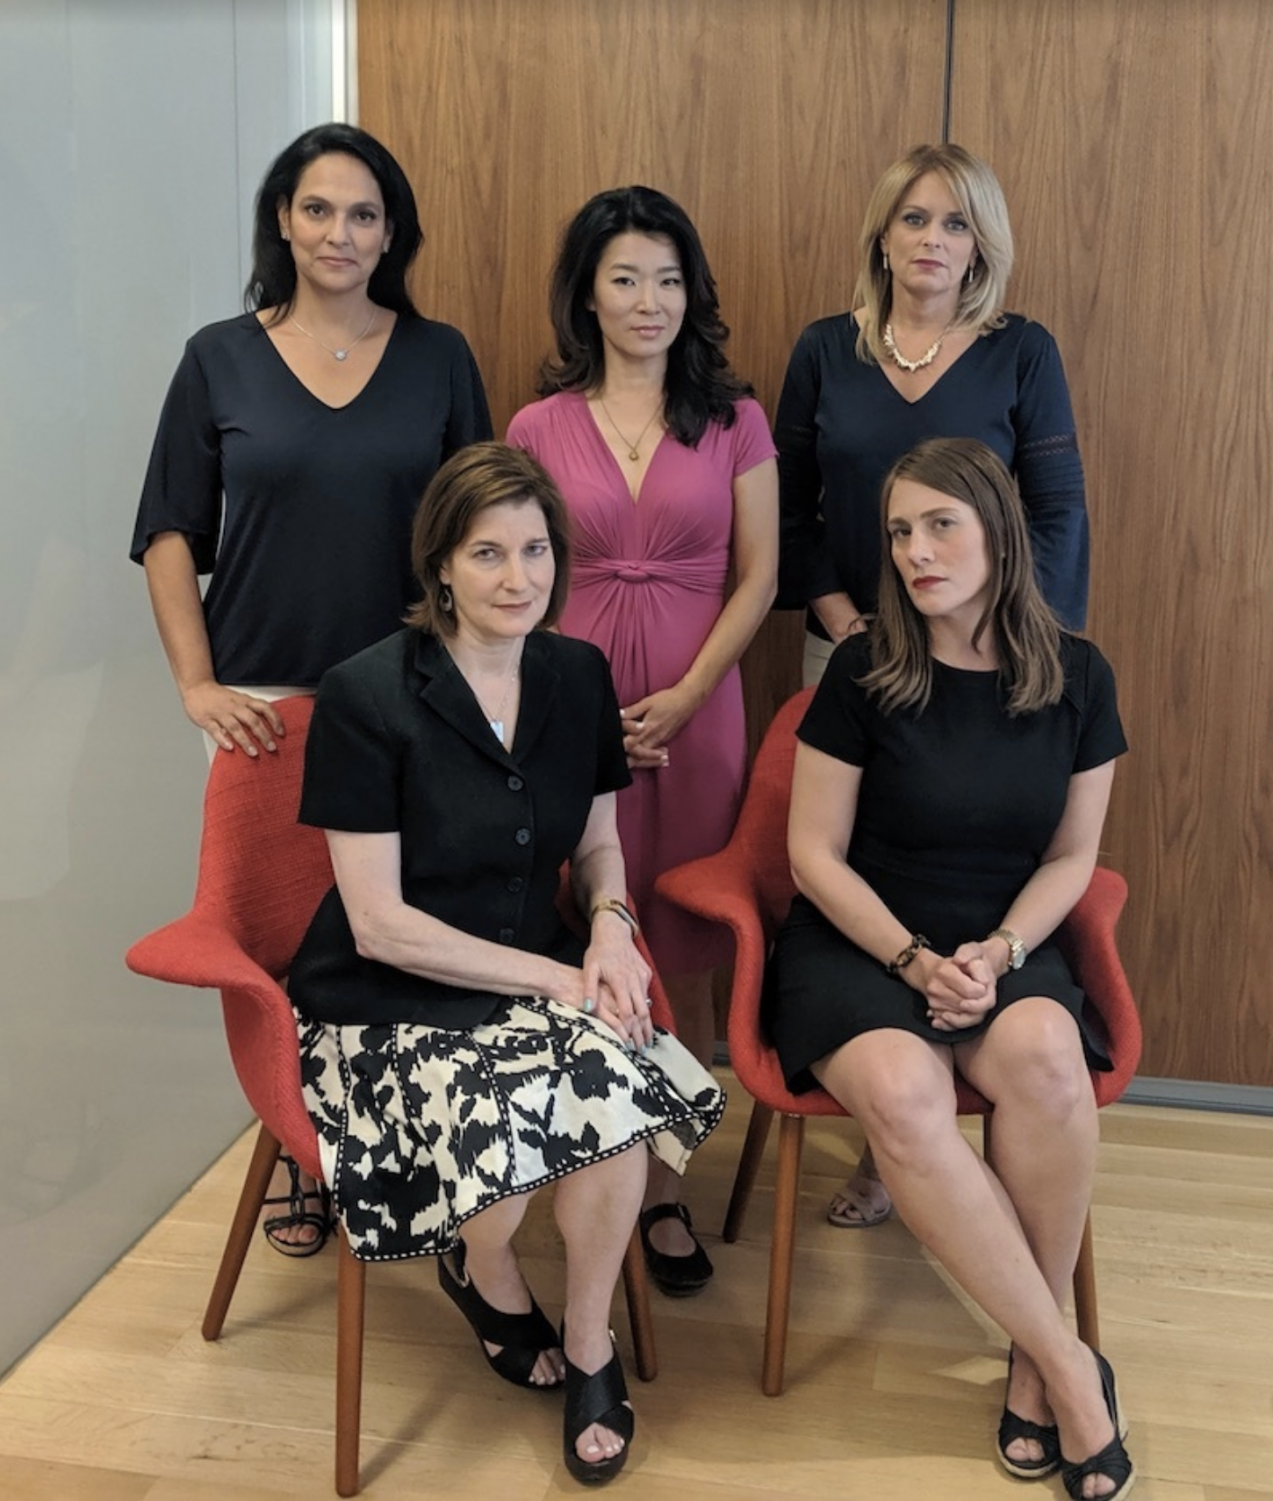 The plaintiffs of the case. From left to right (standing): Jeanine Ramirez, Vivian Lee and Kristen Shaughnessy. (Seated:) Roma Torre and Amanda Farinacci.